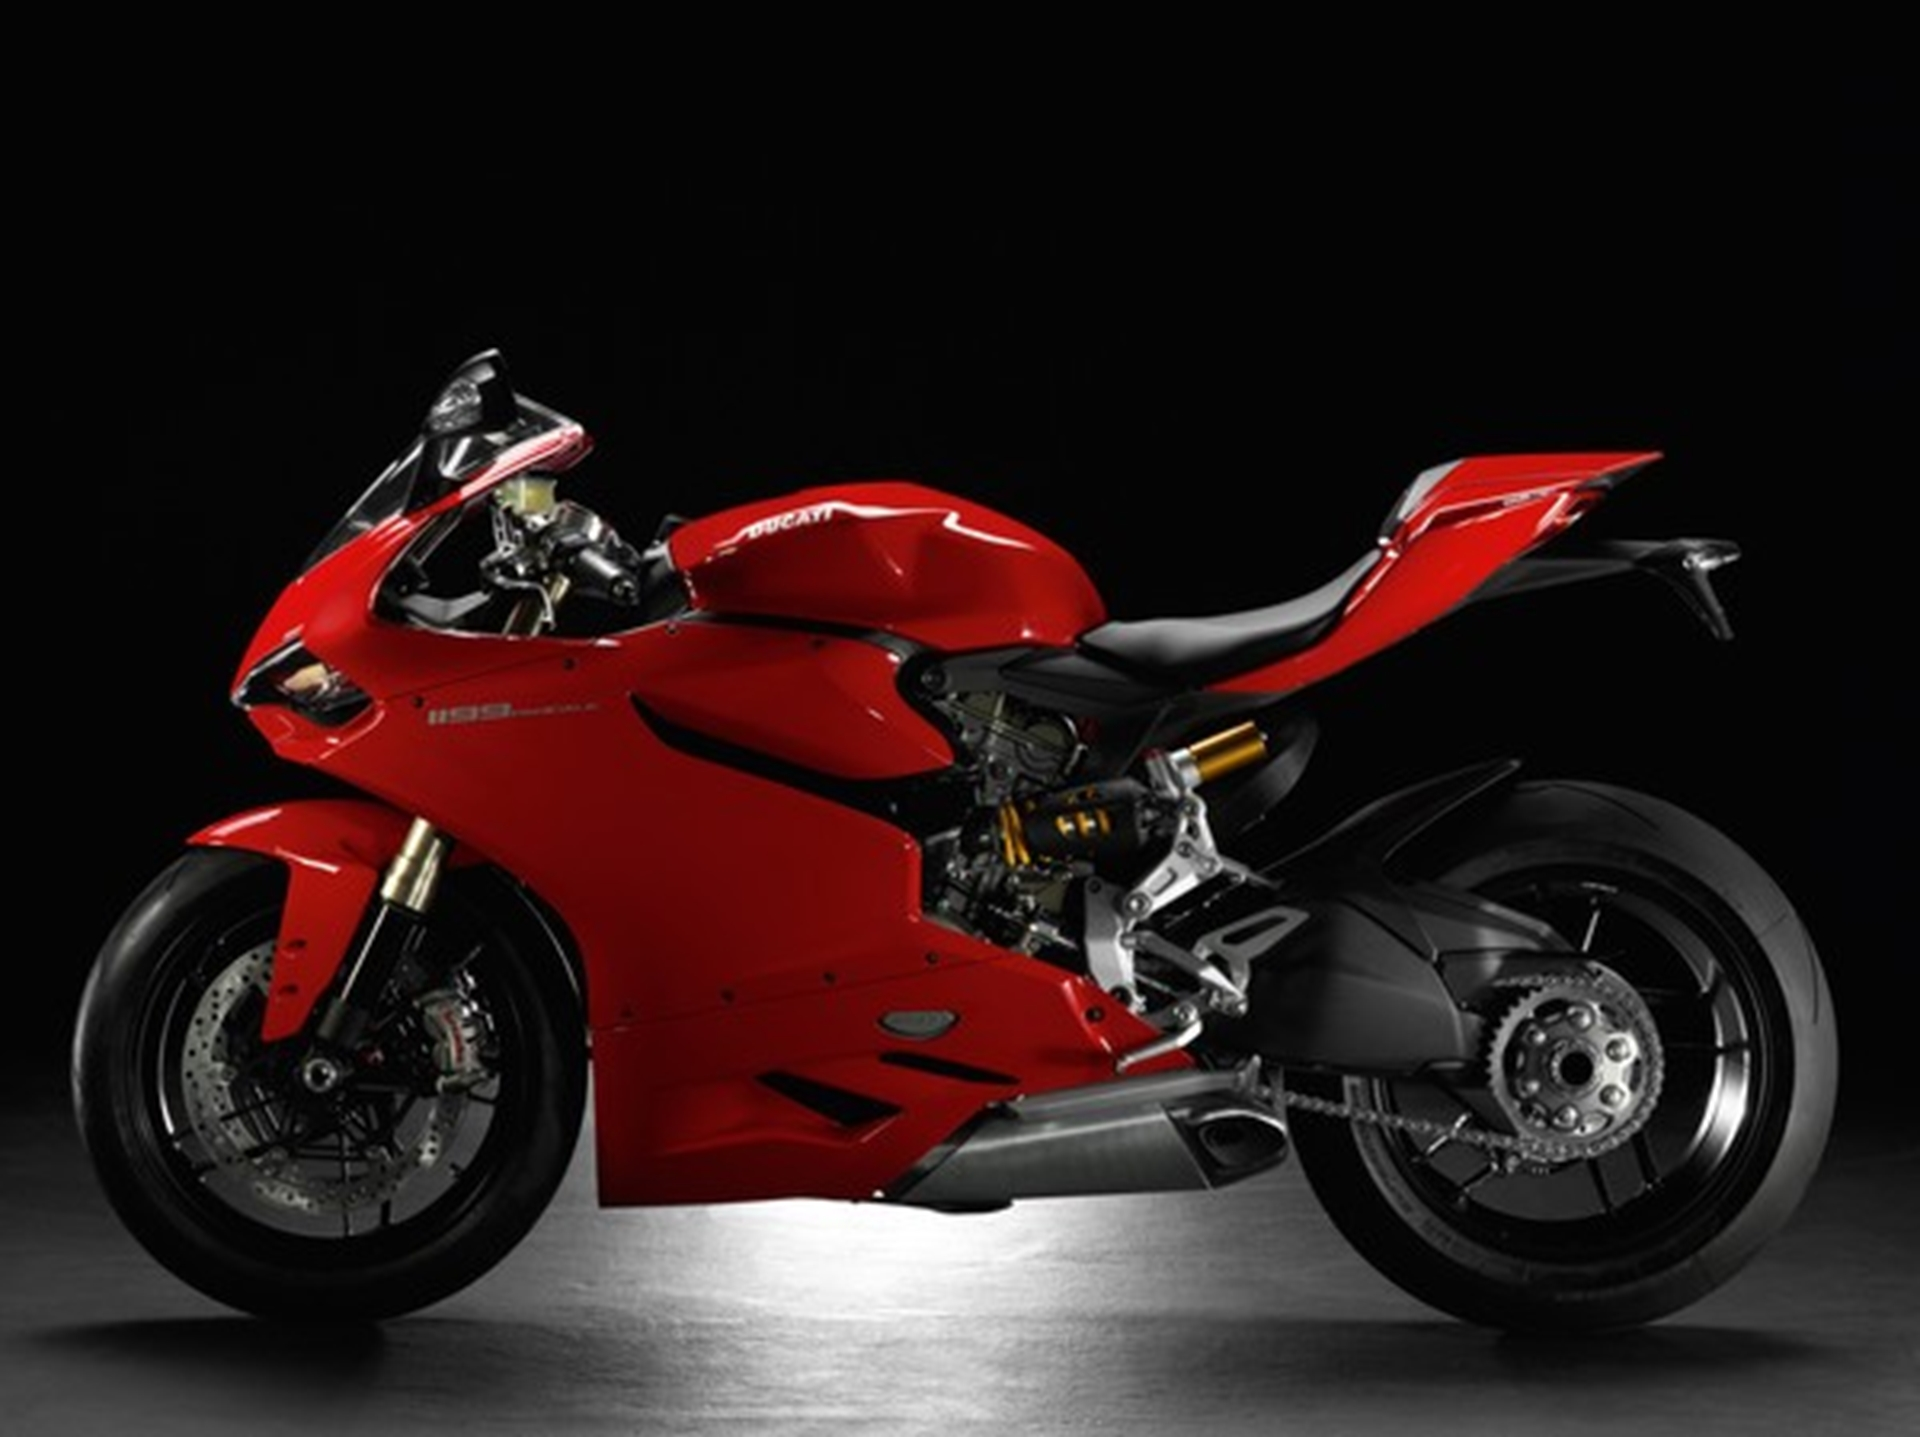 Panigale 1199